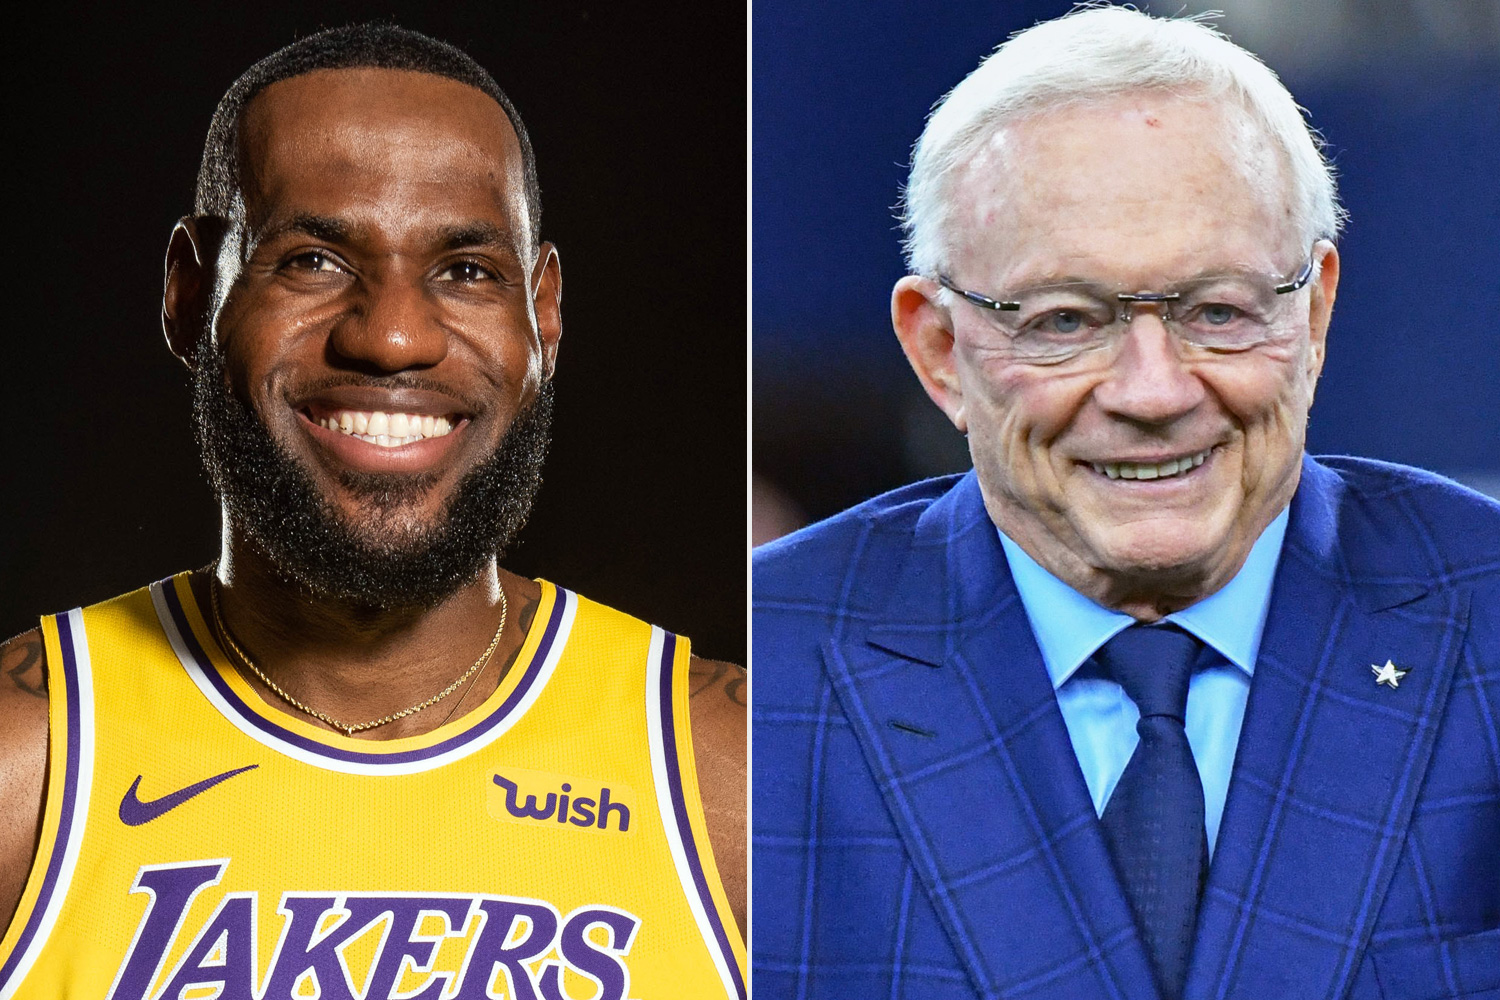 LeBron James Once Received a Contract from Jerry Jones to Play for the Dallas Cowboys